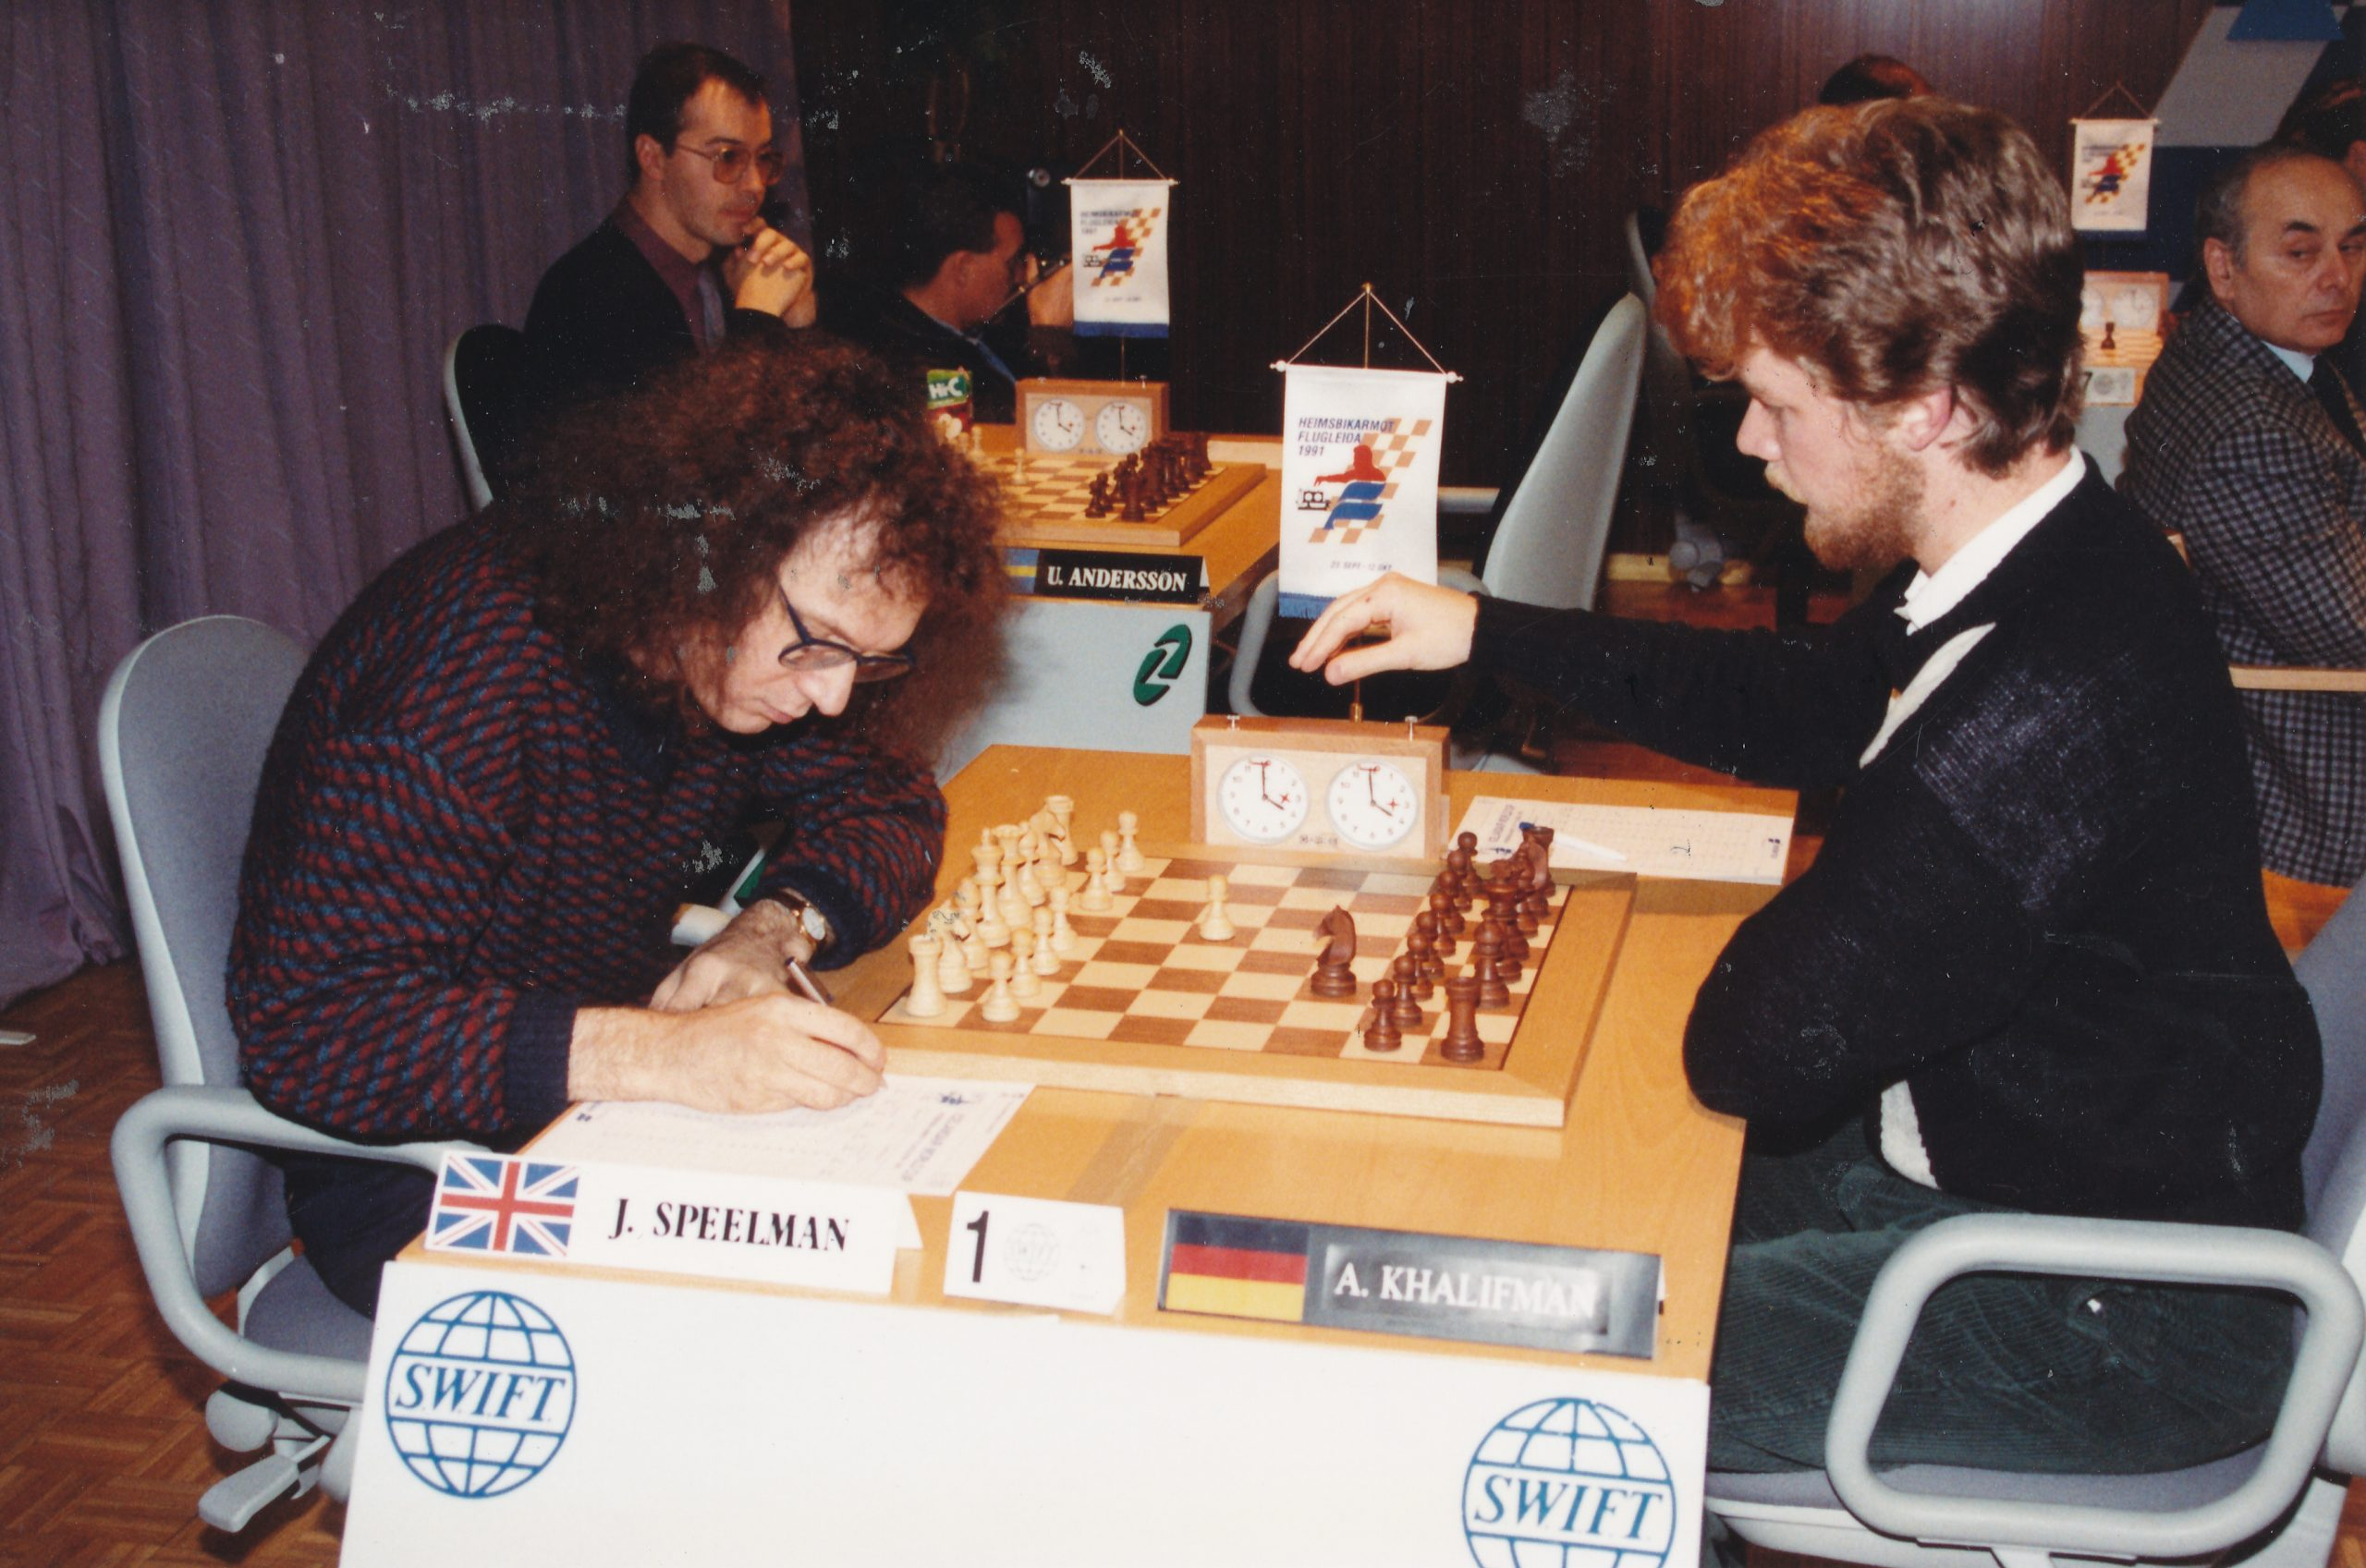 JS plays Alexander Khalifman during the SWIFT World Cup in Reykjavik, 1991. The game was drawn